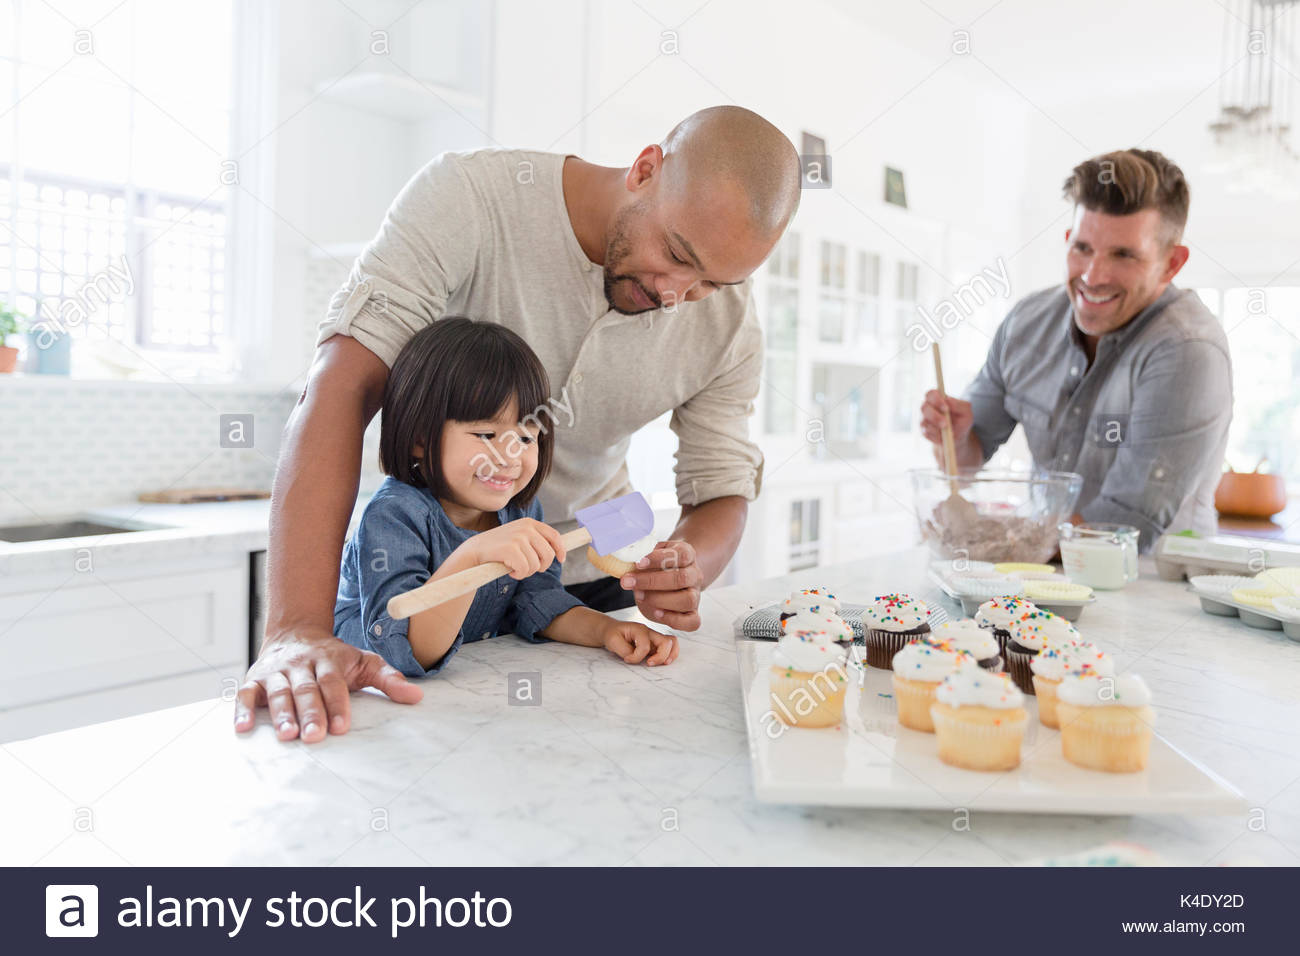 Male gay parents and adopted toddler daughter baking cupcakes in kitchen - Stock Image